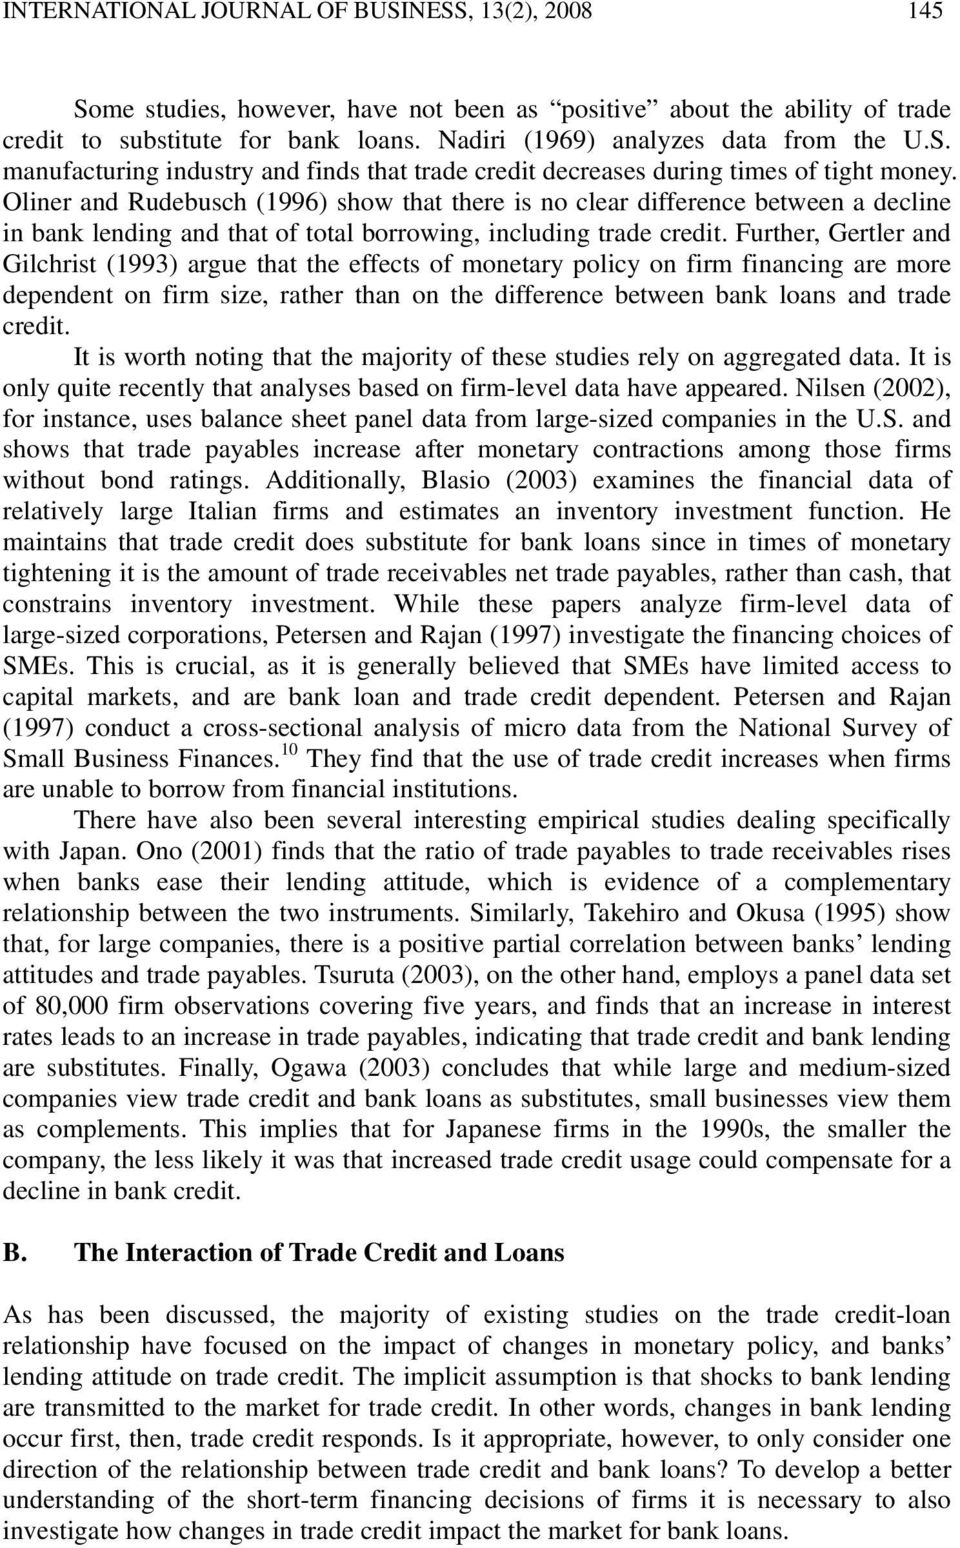 Oliner and Rudebusch (1996) show that there is no clear difference between a decline in bank lending and that of total borrowing, including trade credit.